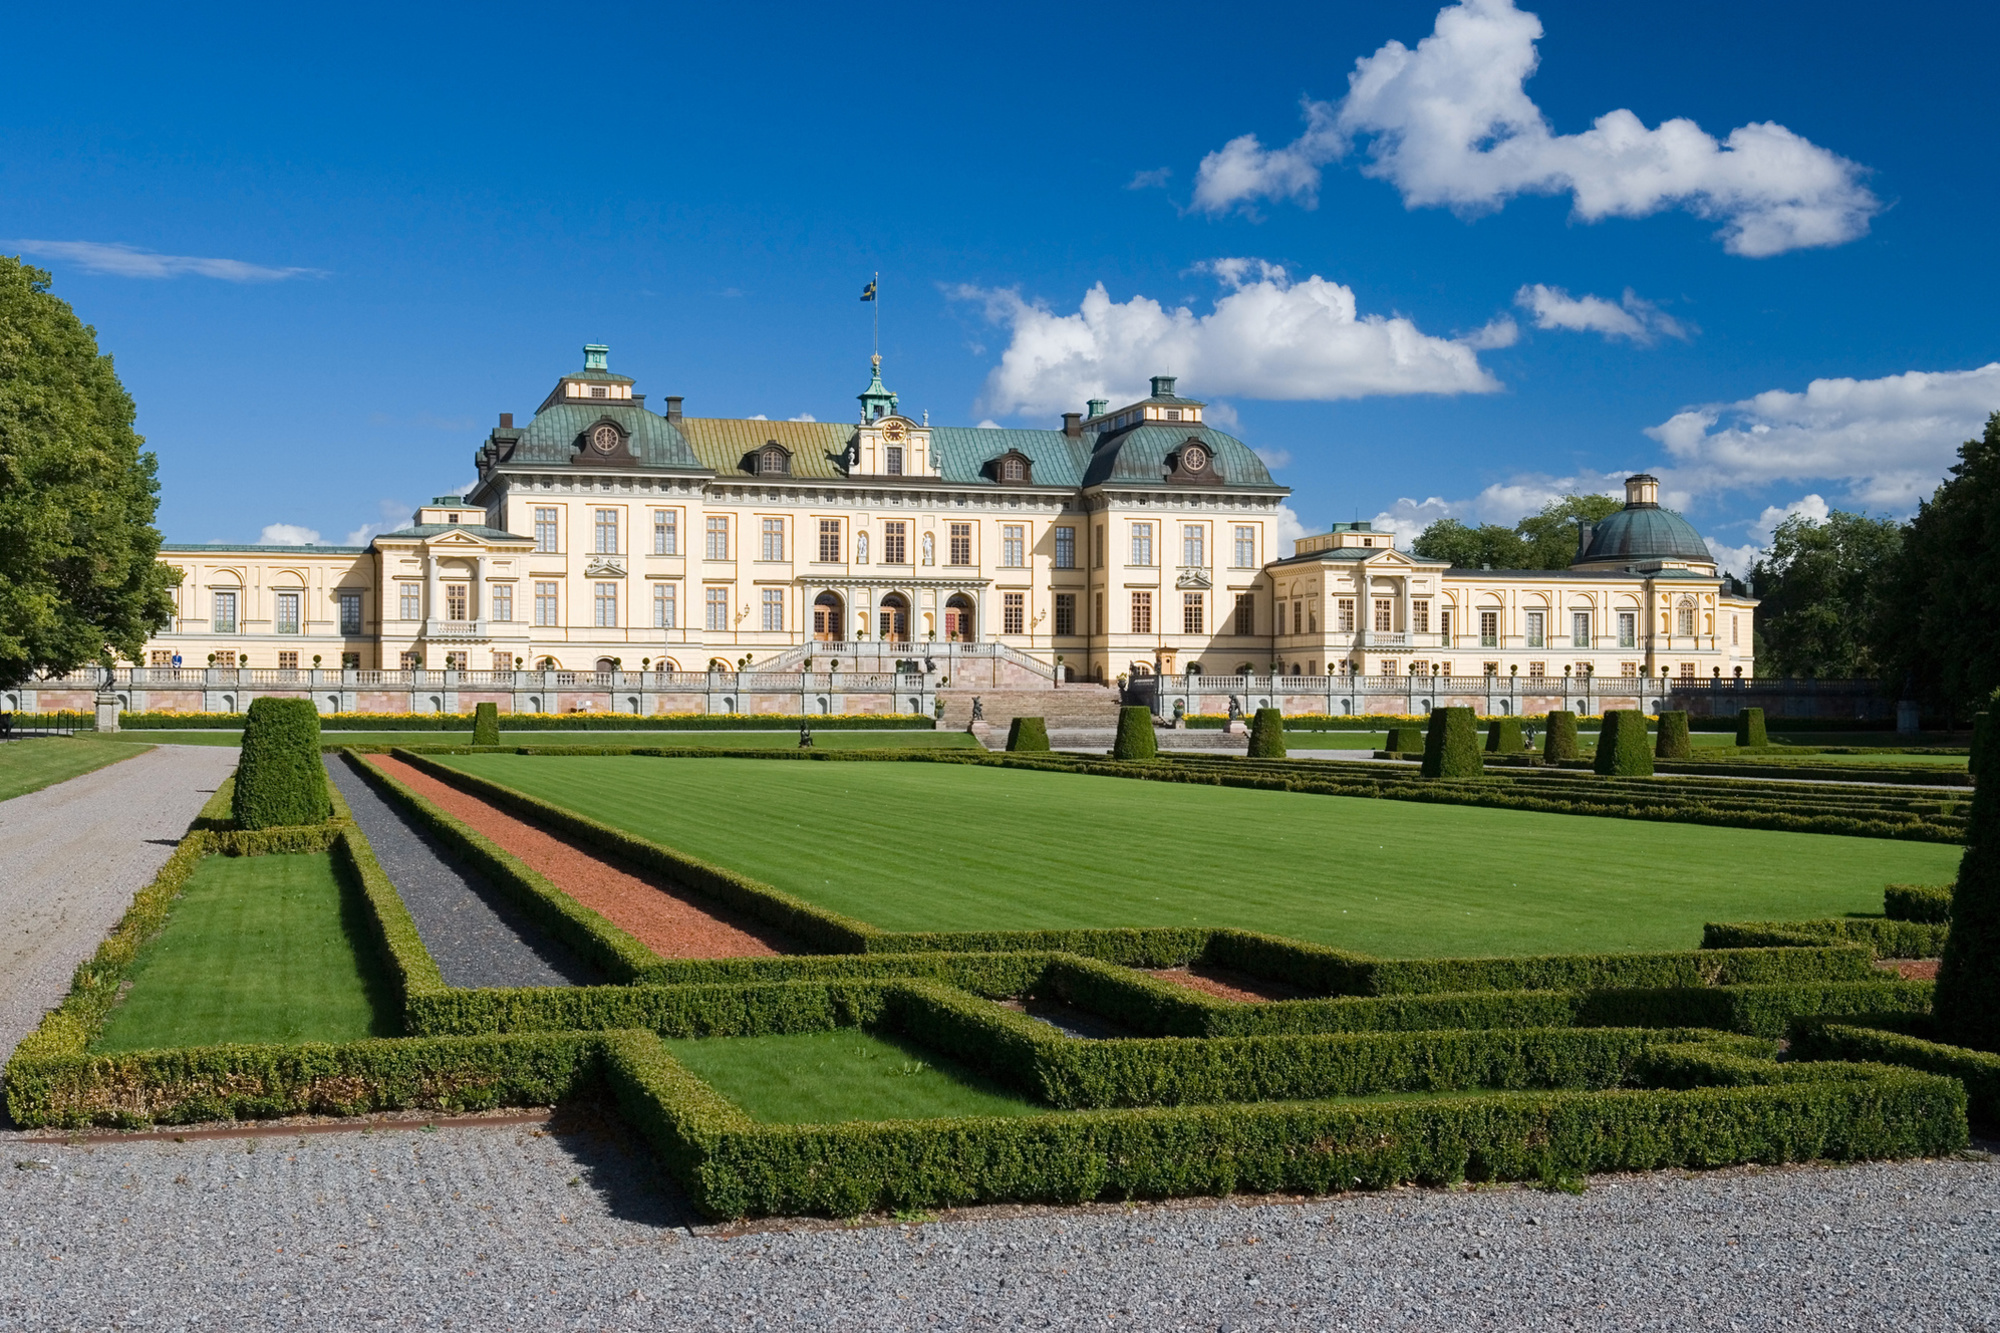 Drottningholm Palace, Getty Images